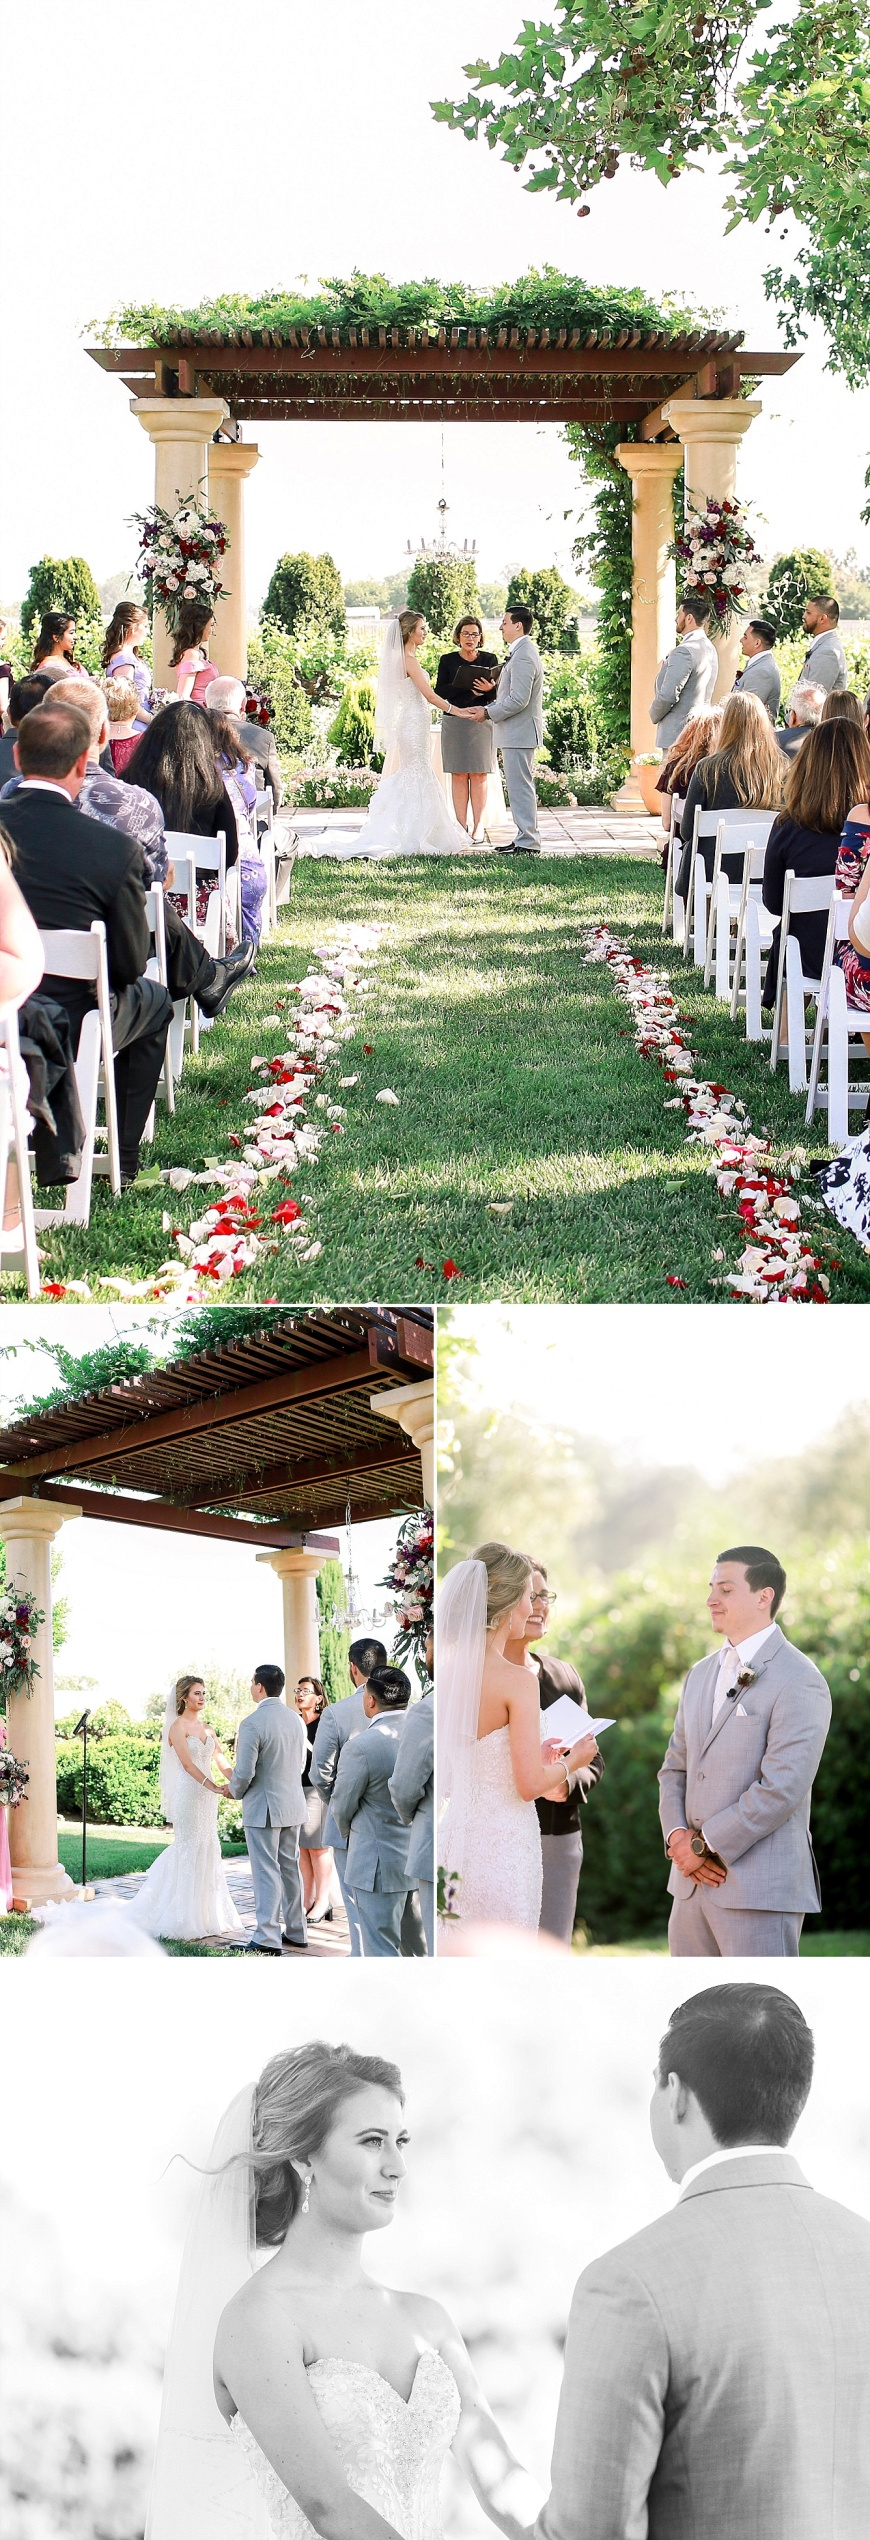 Vintner's-Inn-Wedding-Photographer_1059.jpg